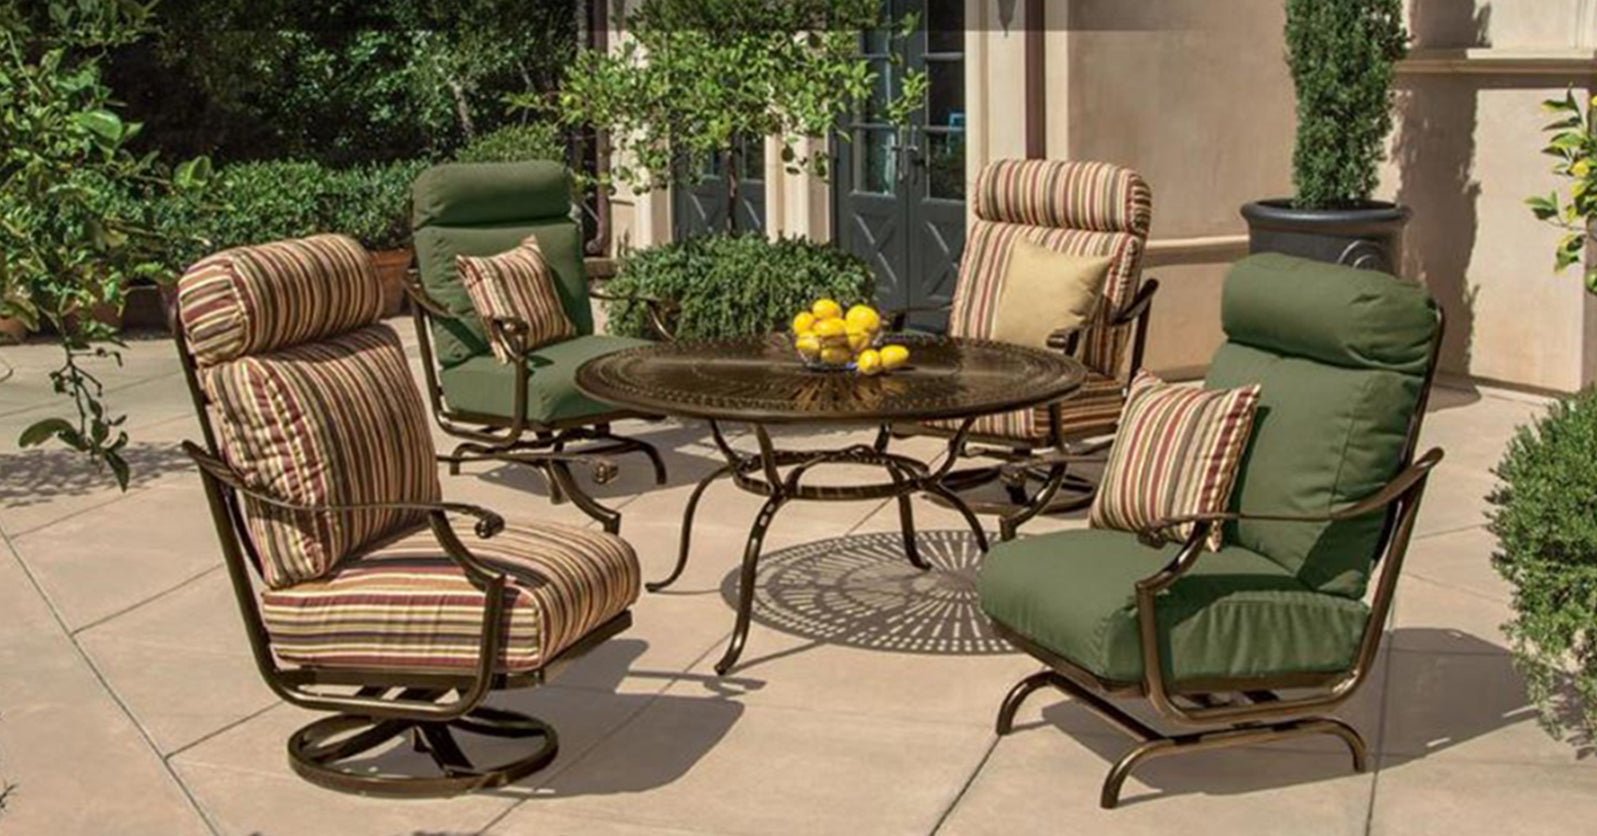 made in america patio furniture spokane wa